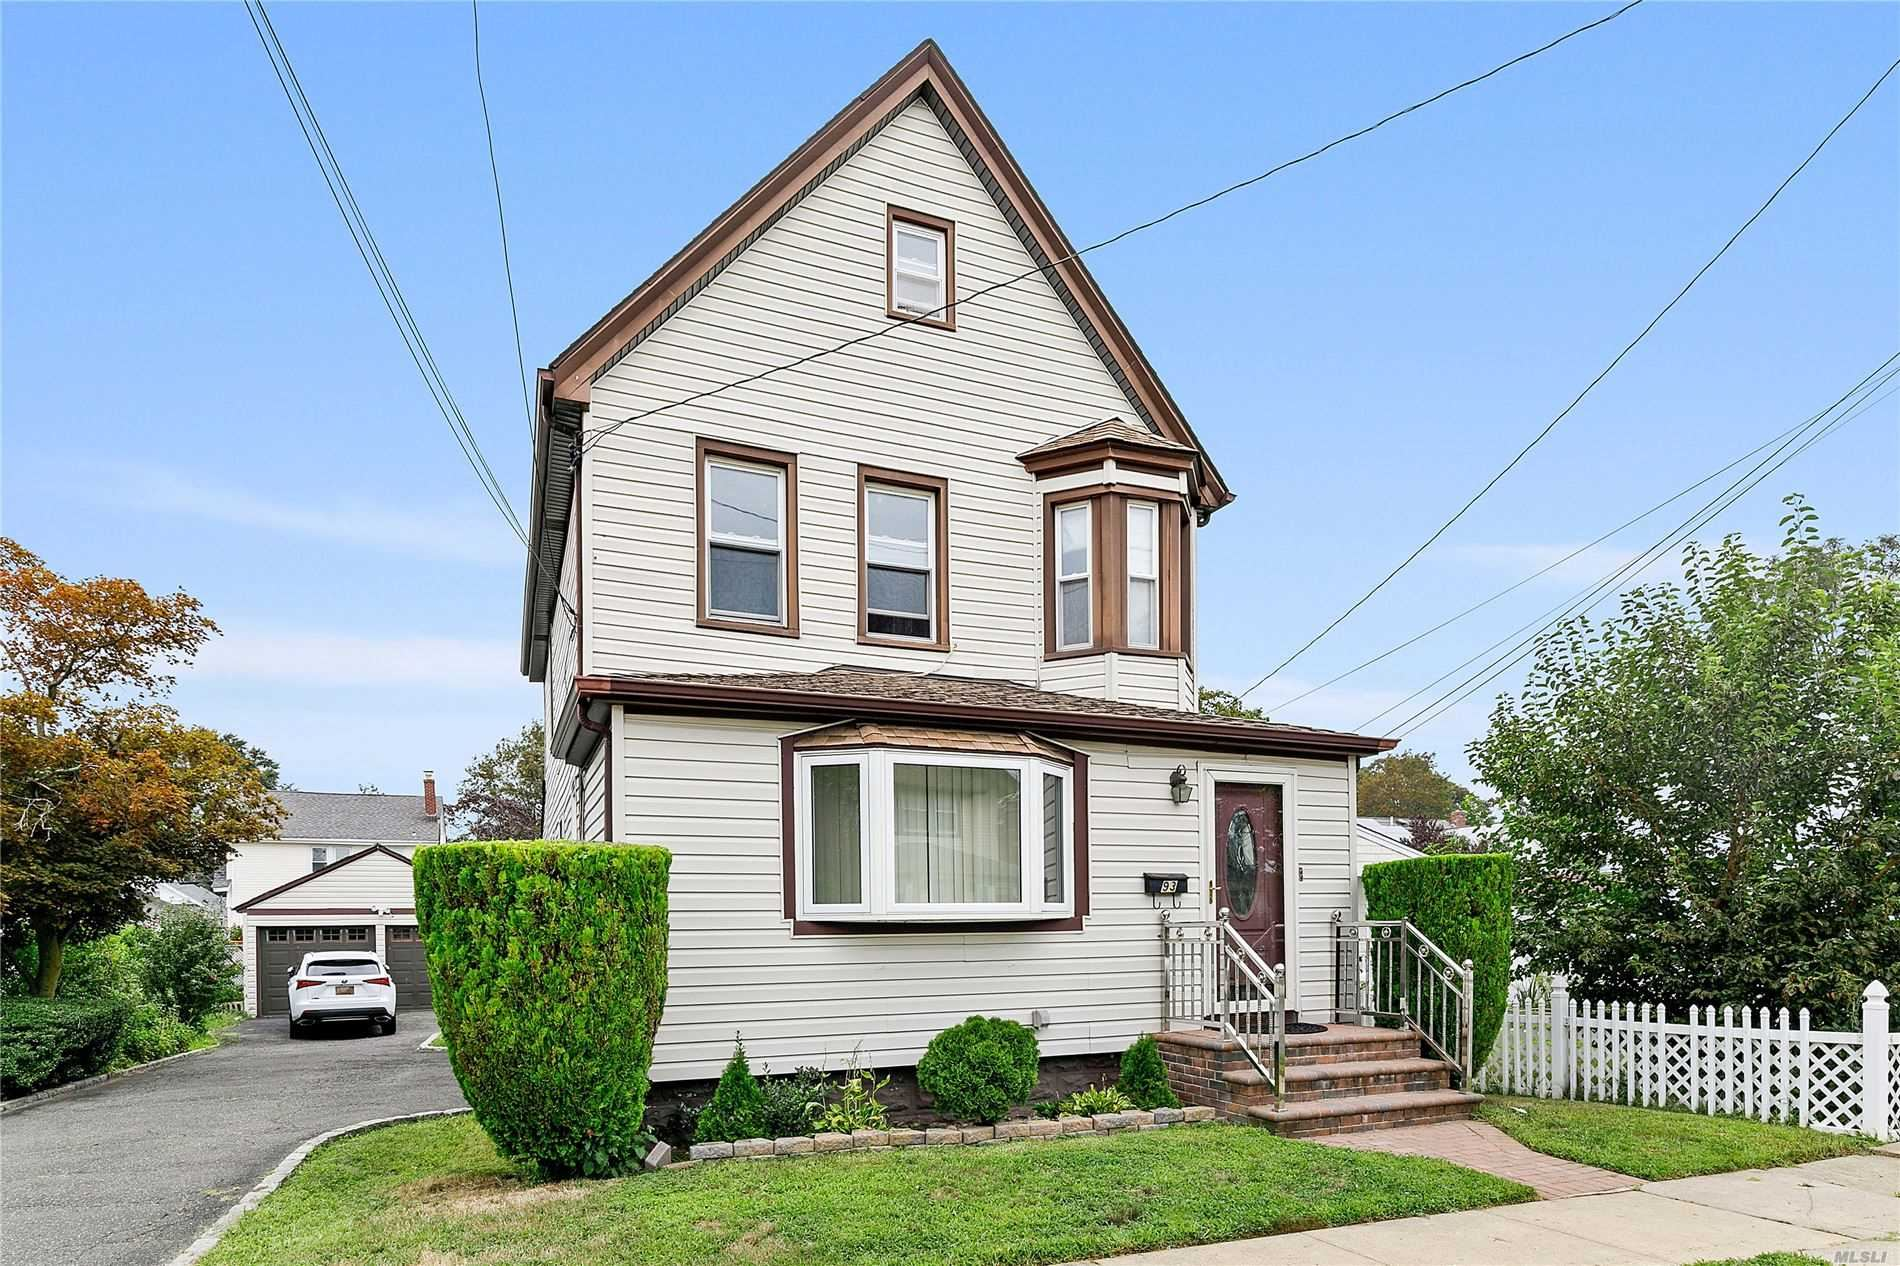 93 E 93 Bismark Ave, Valley Stream, NY 11581 - MLS#: 3246926